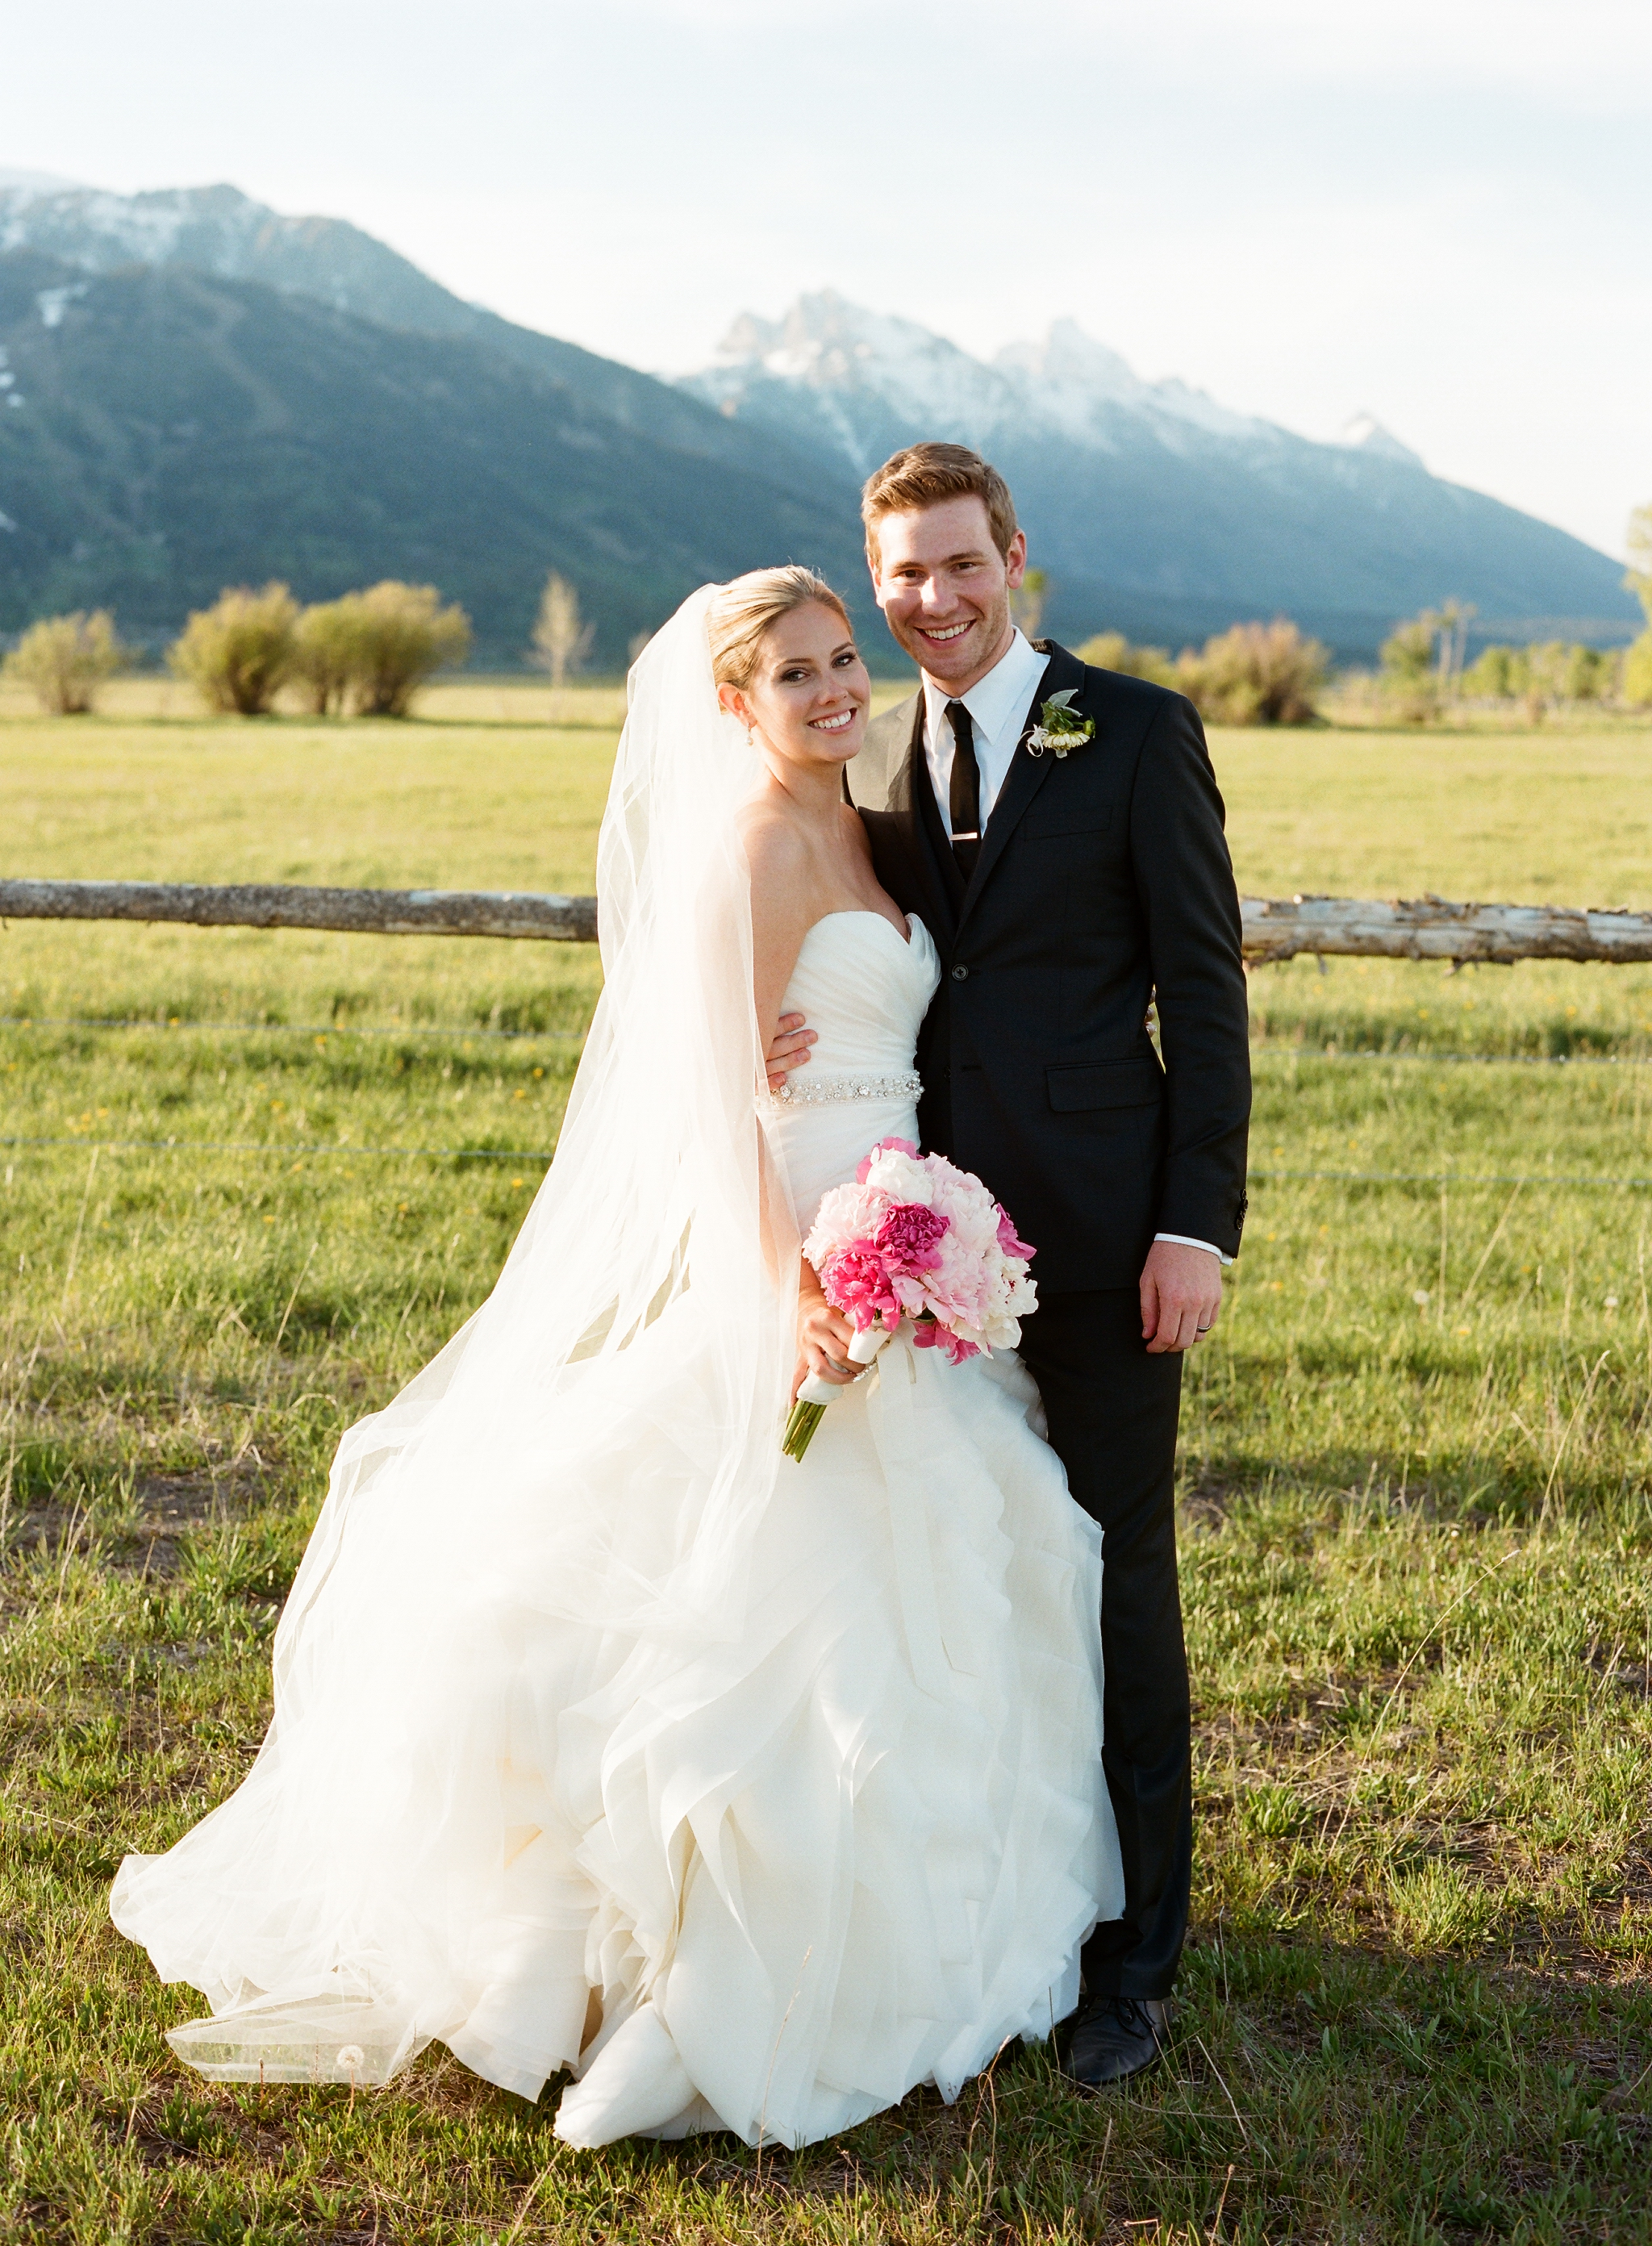 Jackson Hole wedding photos